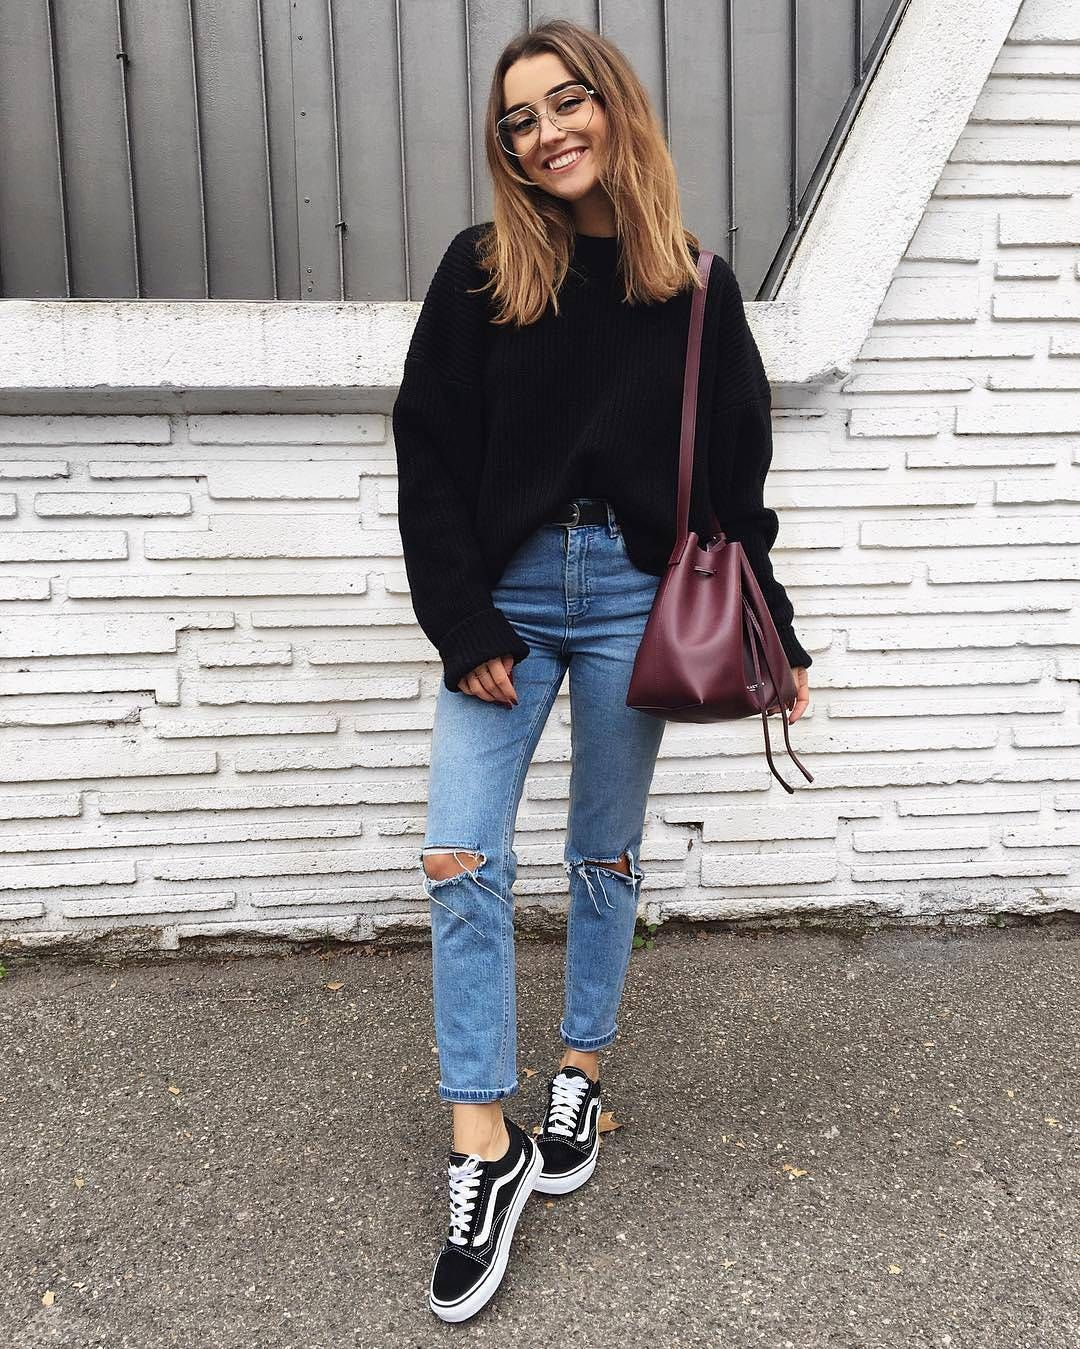 Pinterest↠ @annaxlovee♡   Casual style outfits, Fashion